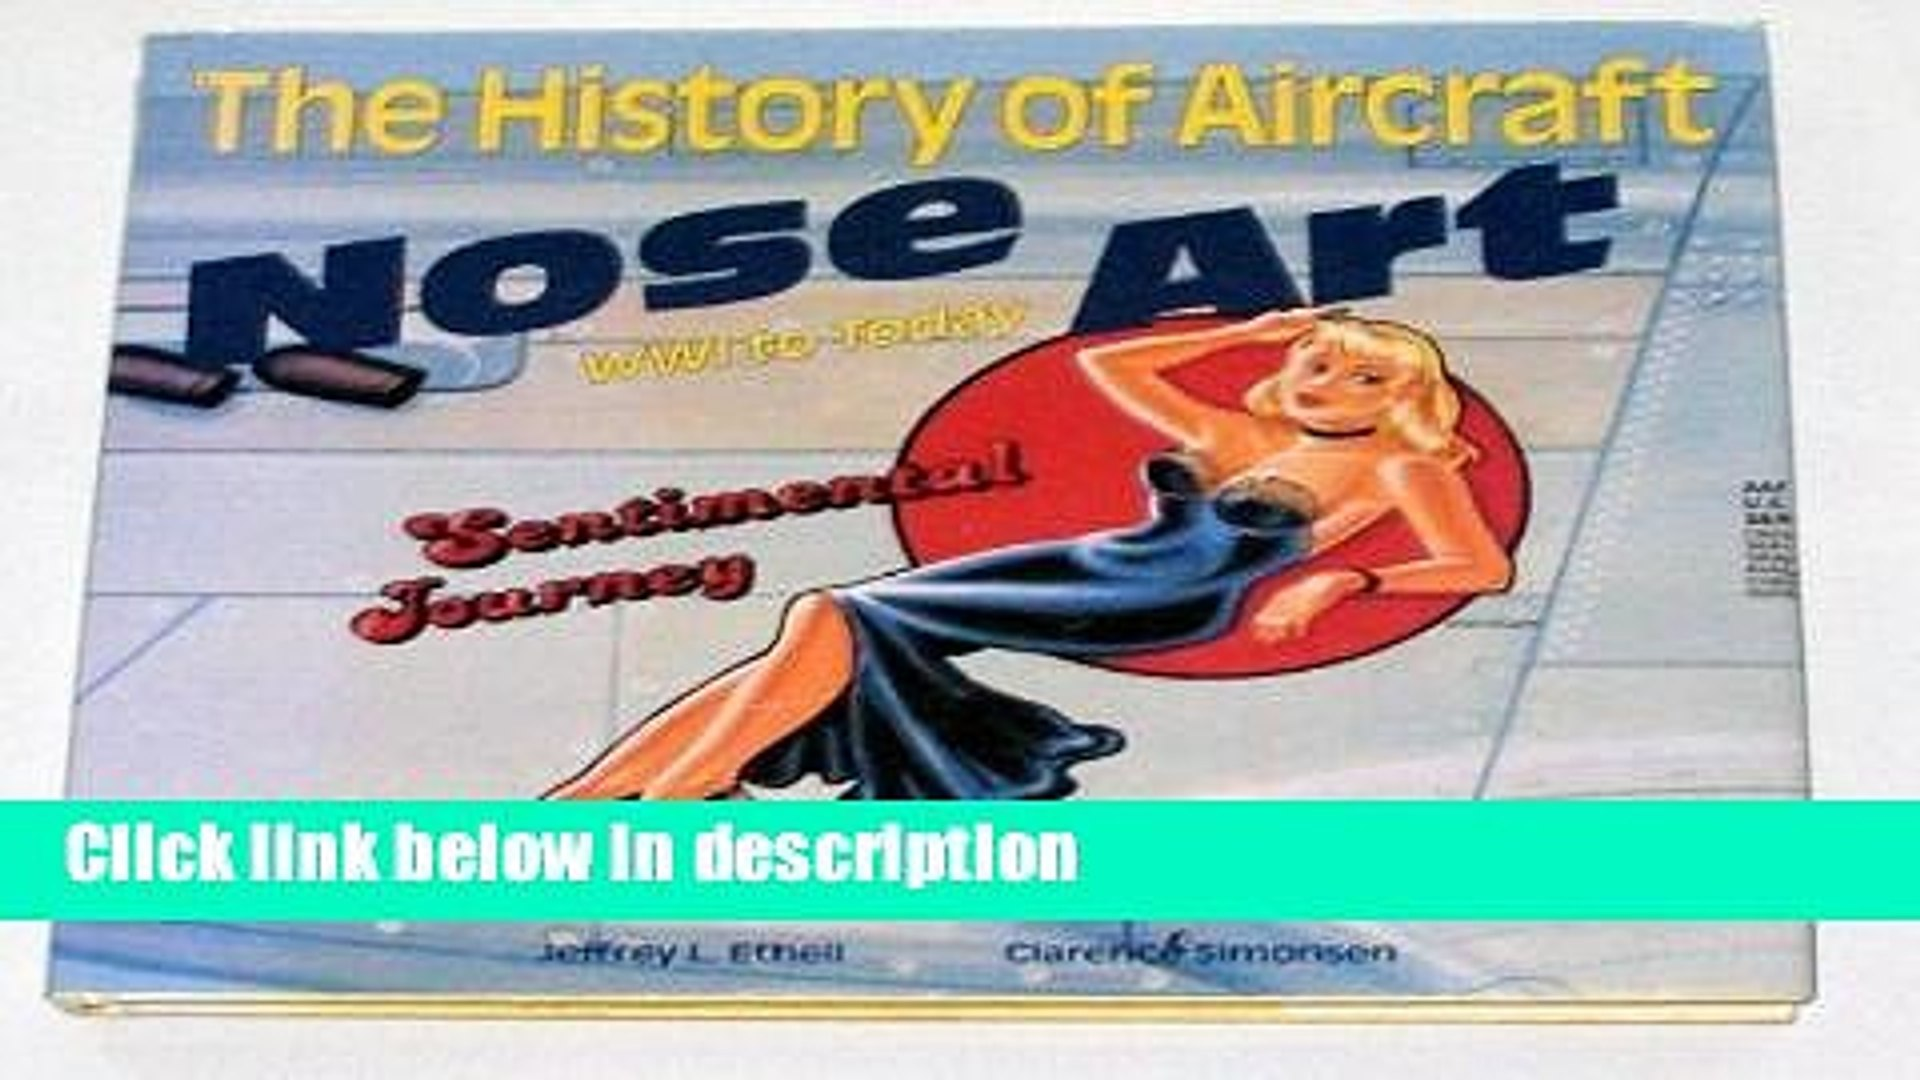 Ebook The History of Aircraft Nose Art: 1916 to Today Free Download